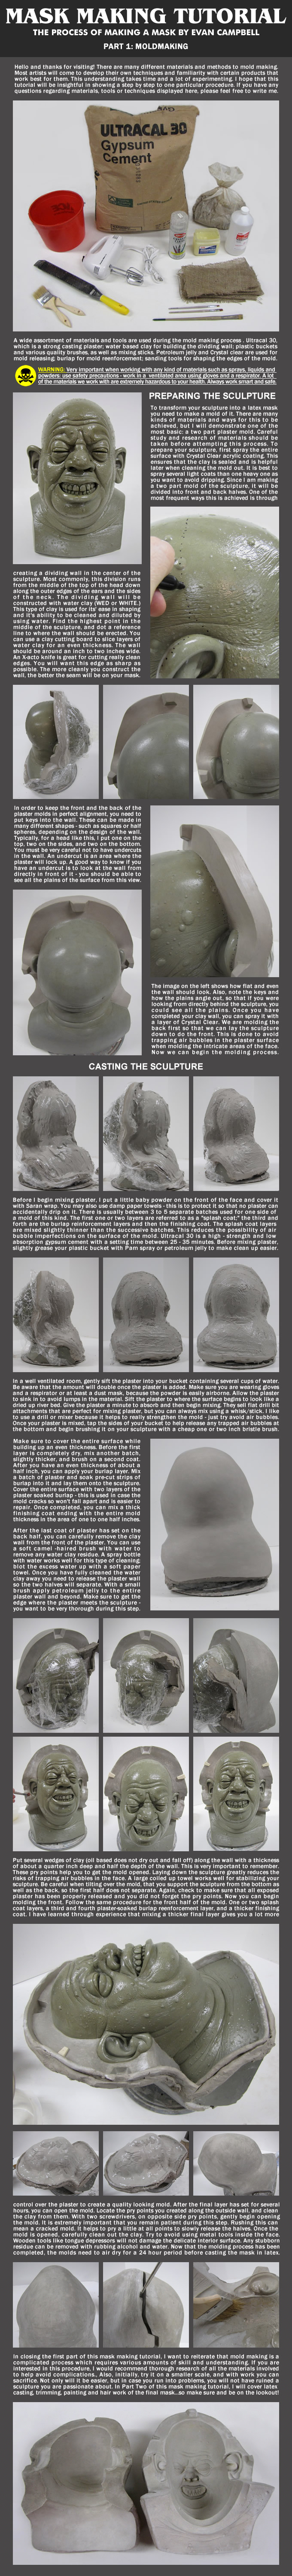 Mask Making Tutorial: Part 1 by EvanCampbell